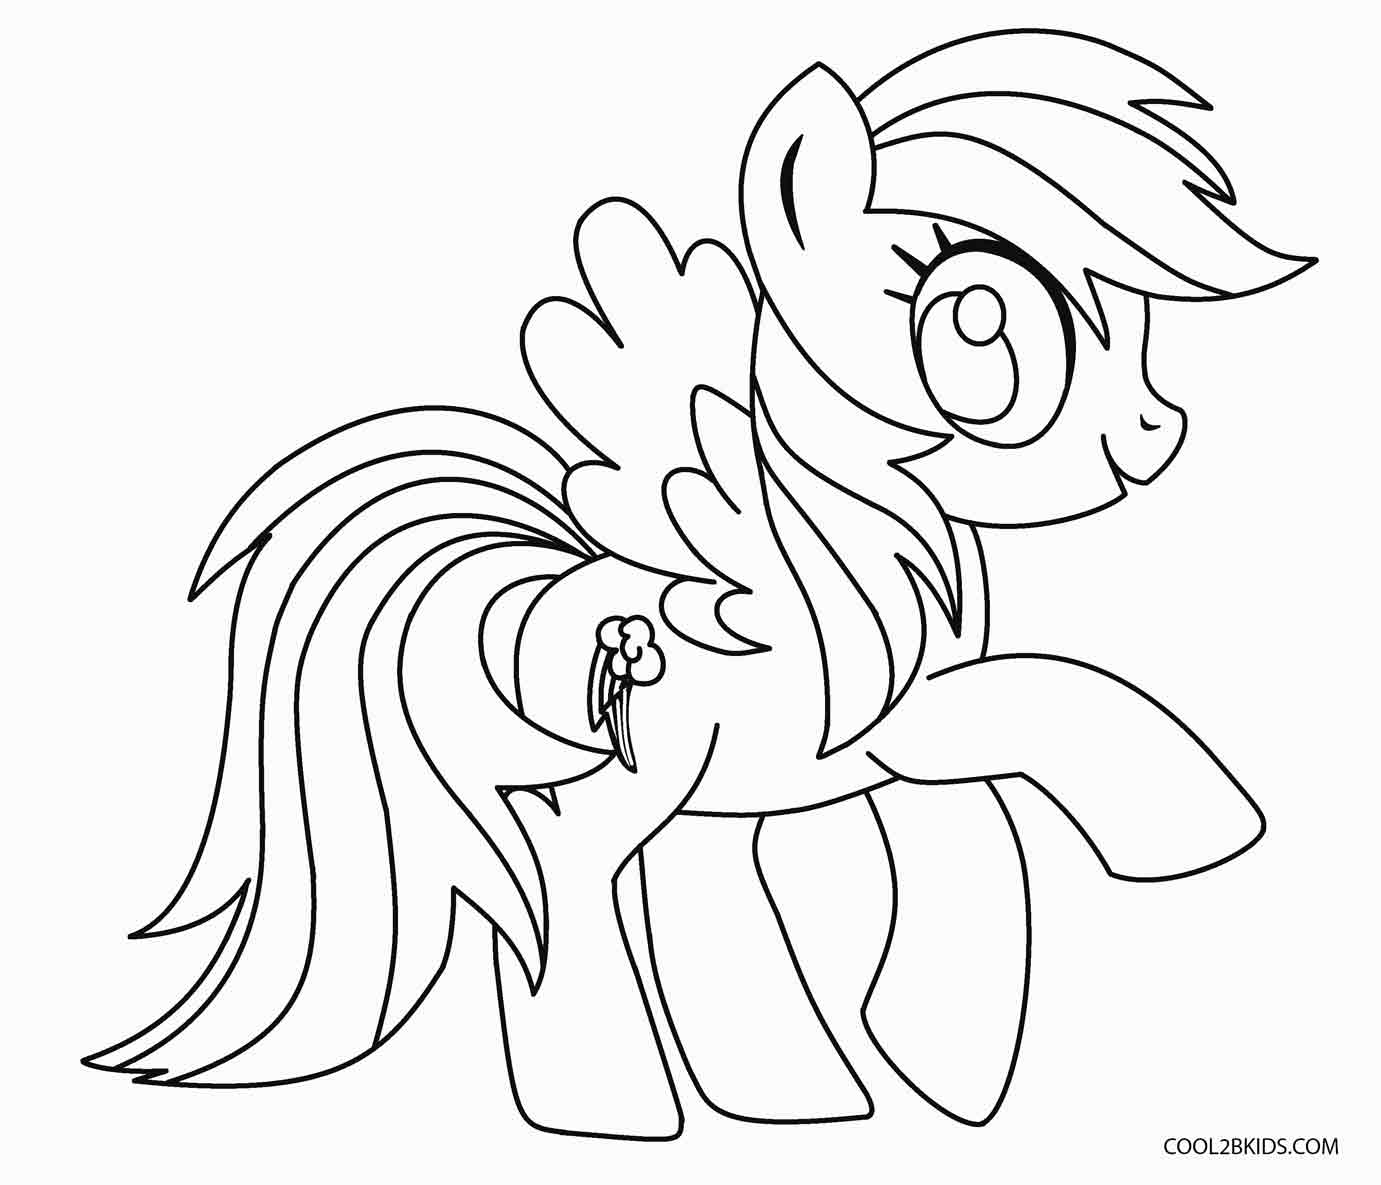 my little pony print out coloring pages 28 best mlp coloring pages images on pinterest printable pony my print pages little out coloring